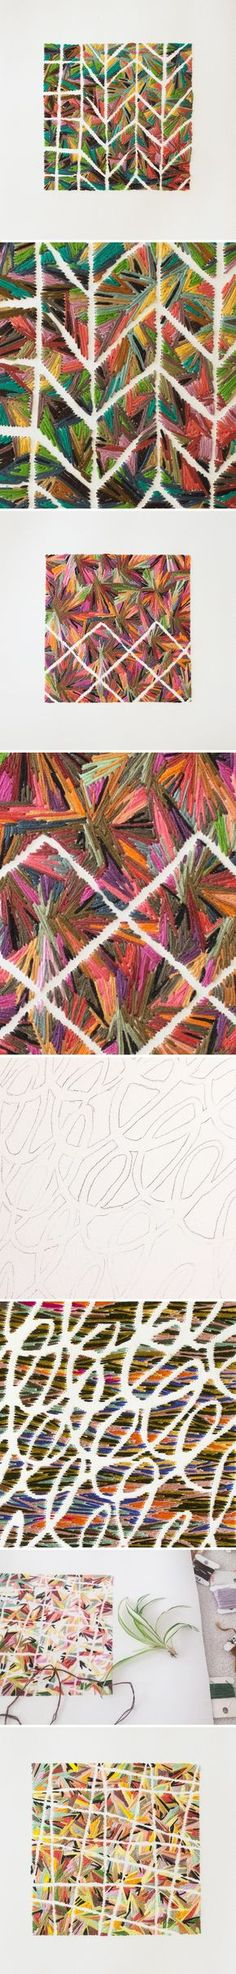 emily barletta - embroidery on paper                                                                                                                                                                                 More